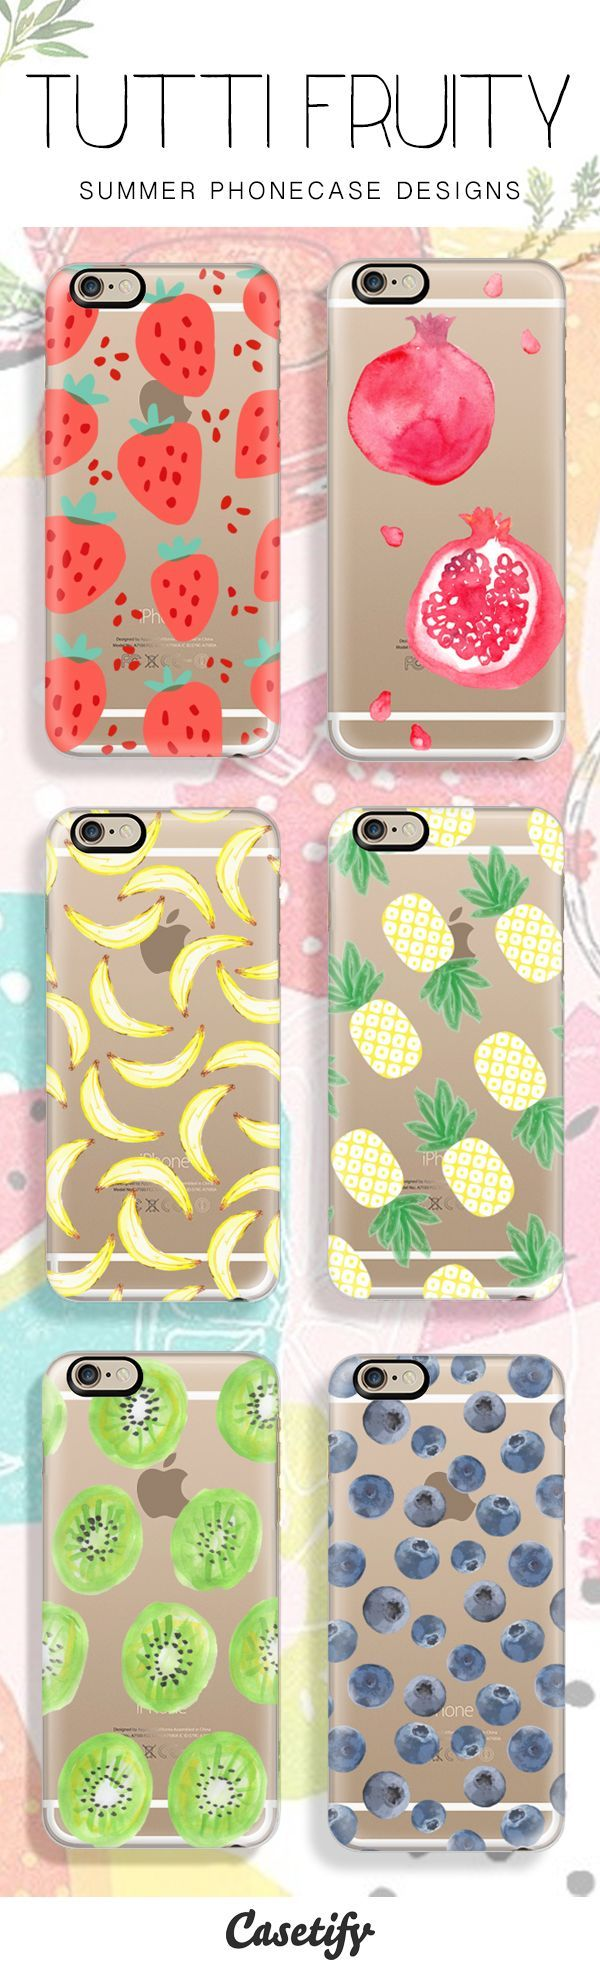 6 All time favourite summer fruit protective iPhone 6 phone cases, grab one if you like strawberries, banana, pineapple, kiwi fruit or bluberries phone cases! | Click through to see more fruity iphone phone case ideas >>> http://www.casetify.com/artworks/Get8n2KEIm | @casetify #PhoneCase